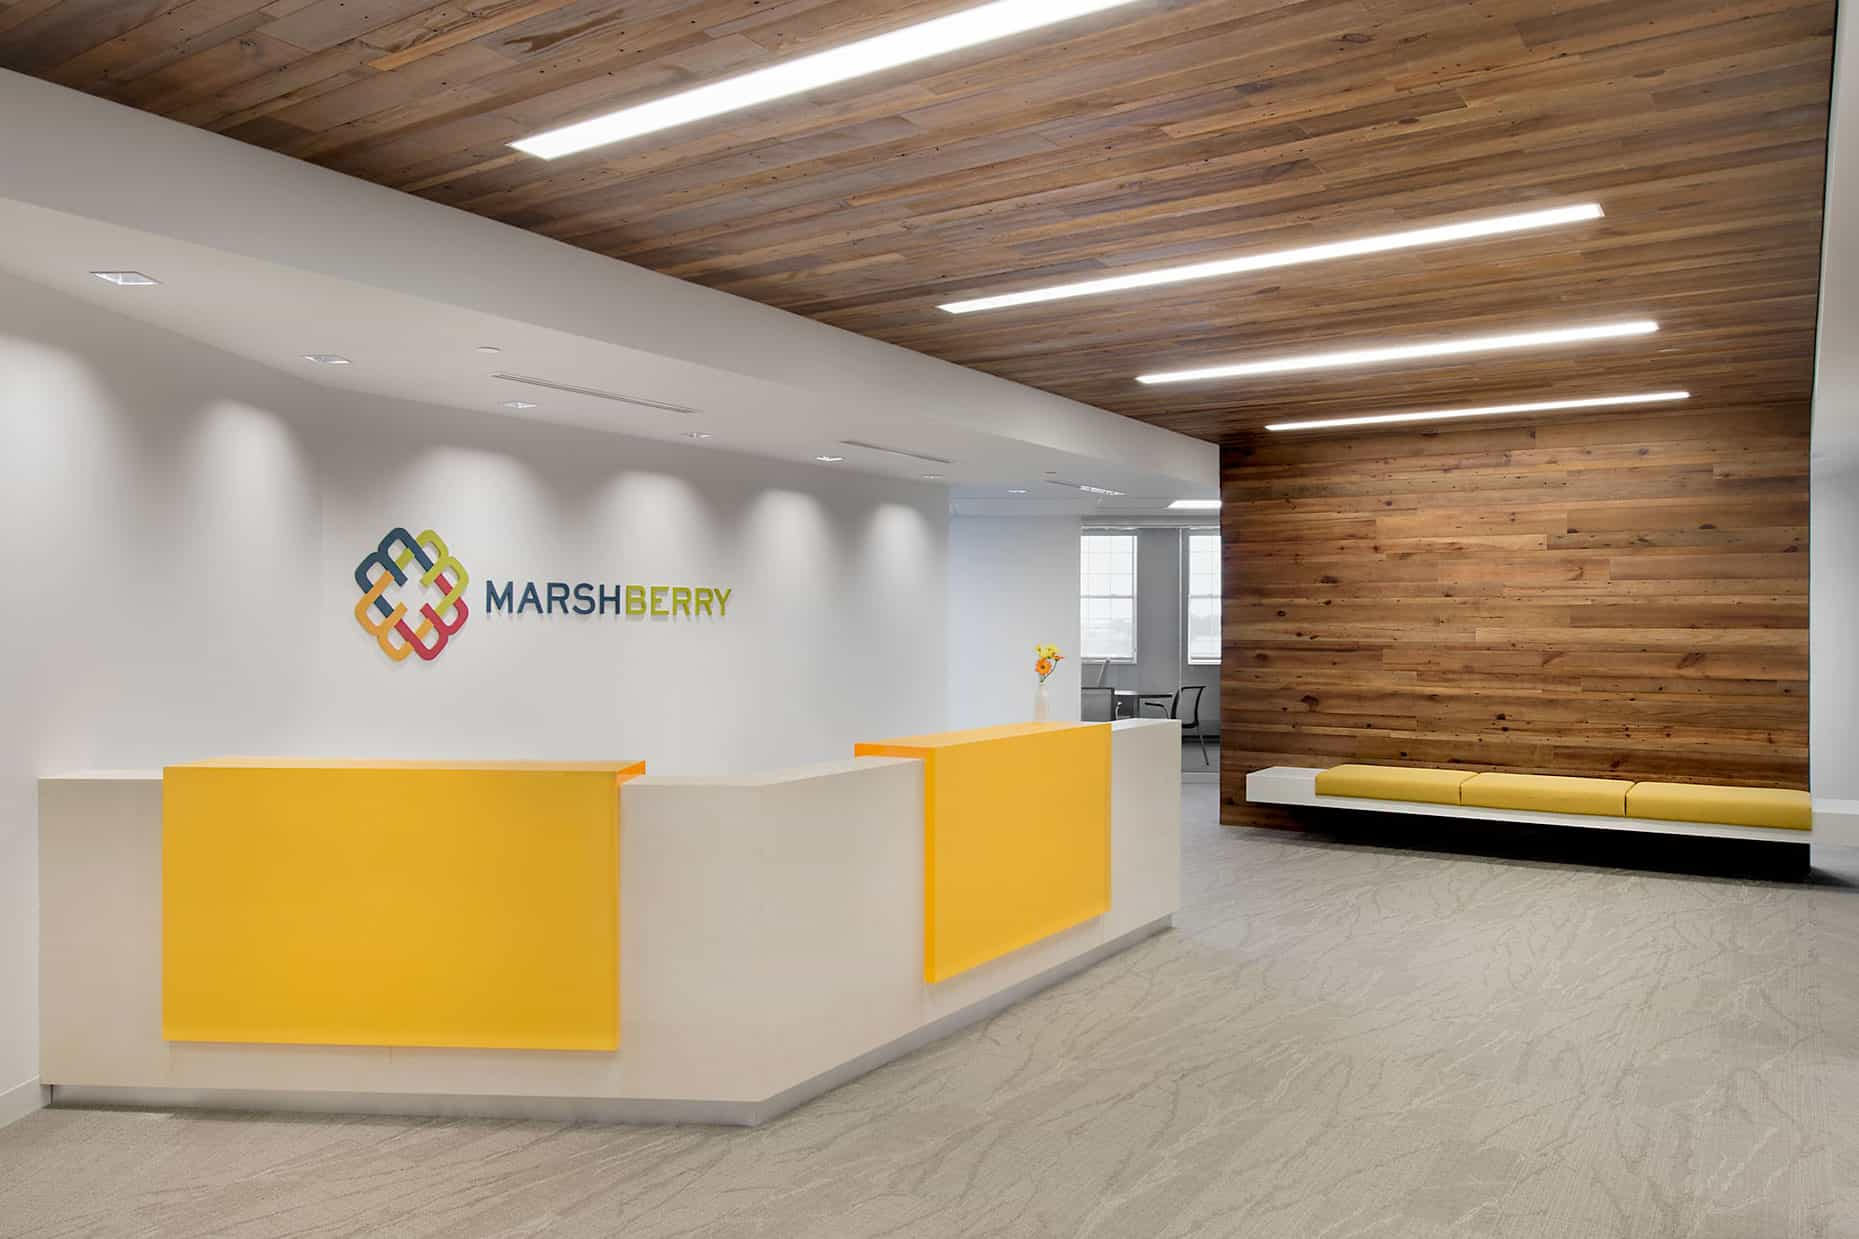 Marshberry Corporation